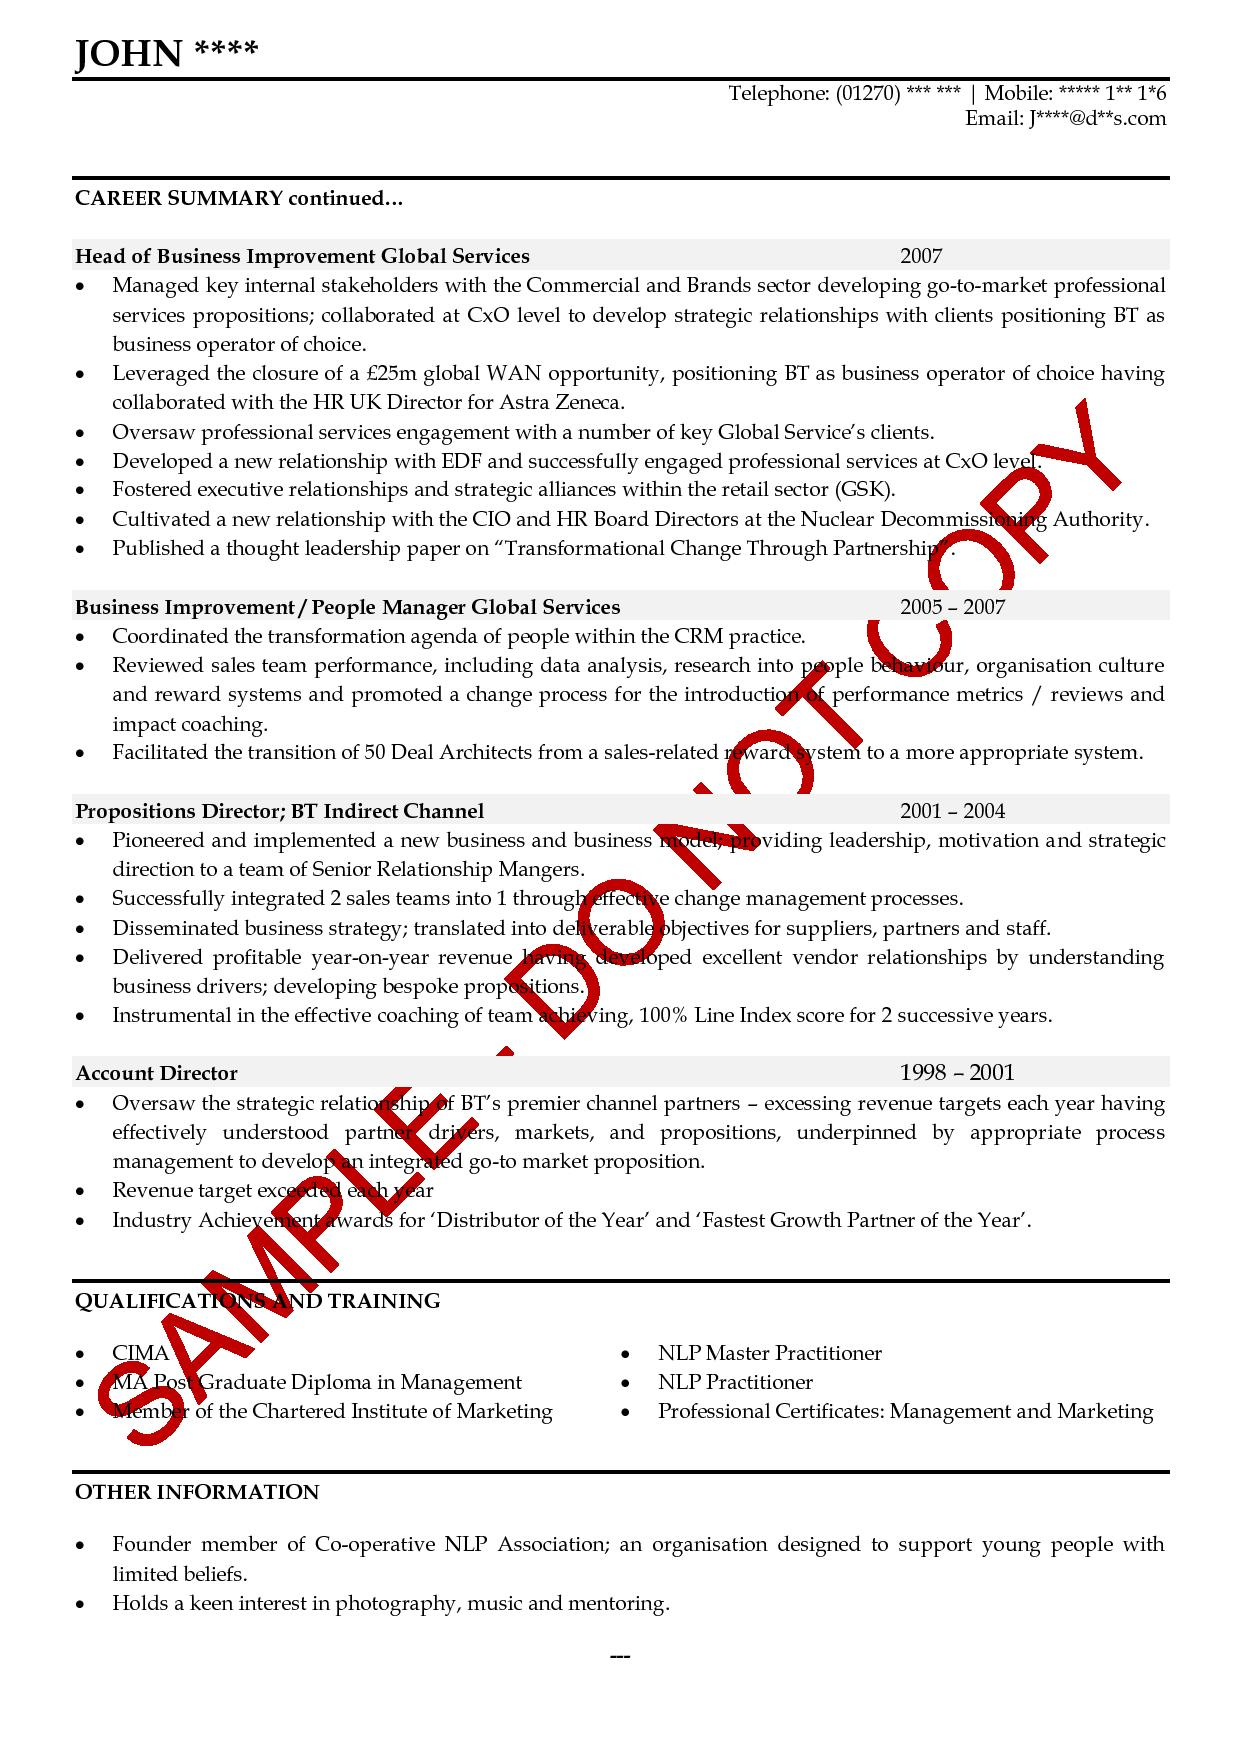 career summary cv example